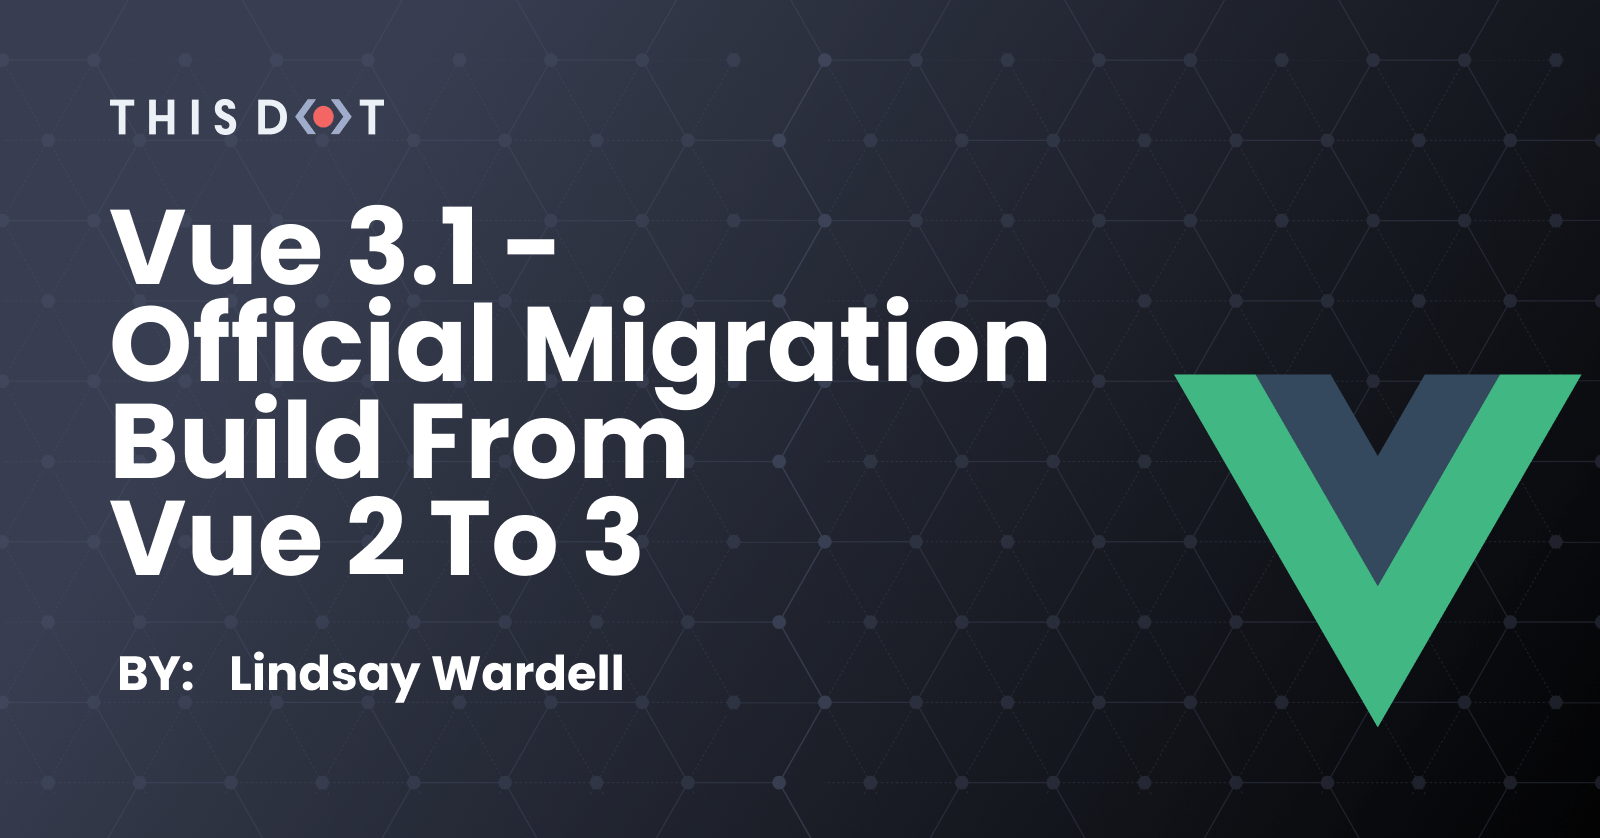 Vue 3.1 - Official Migration Build from Vue 2 to 3